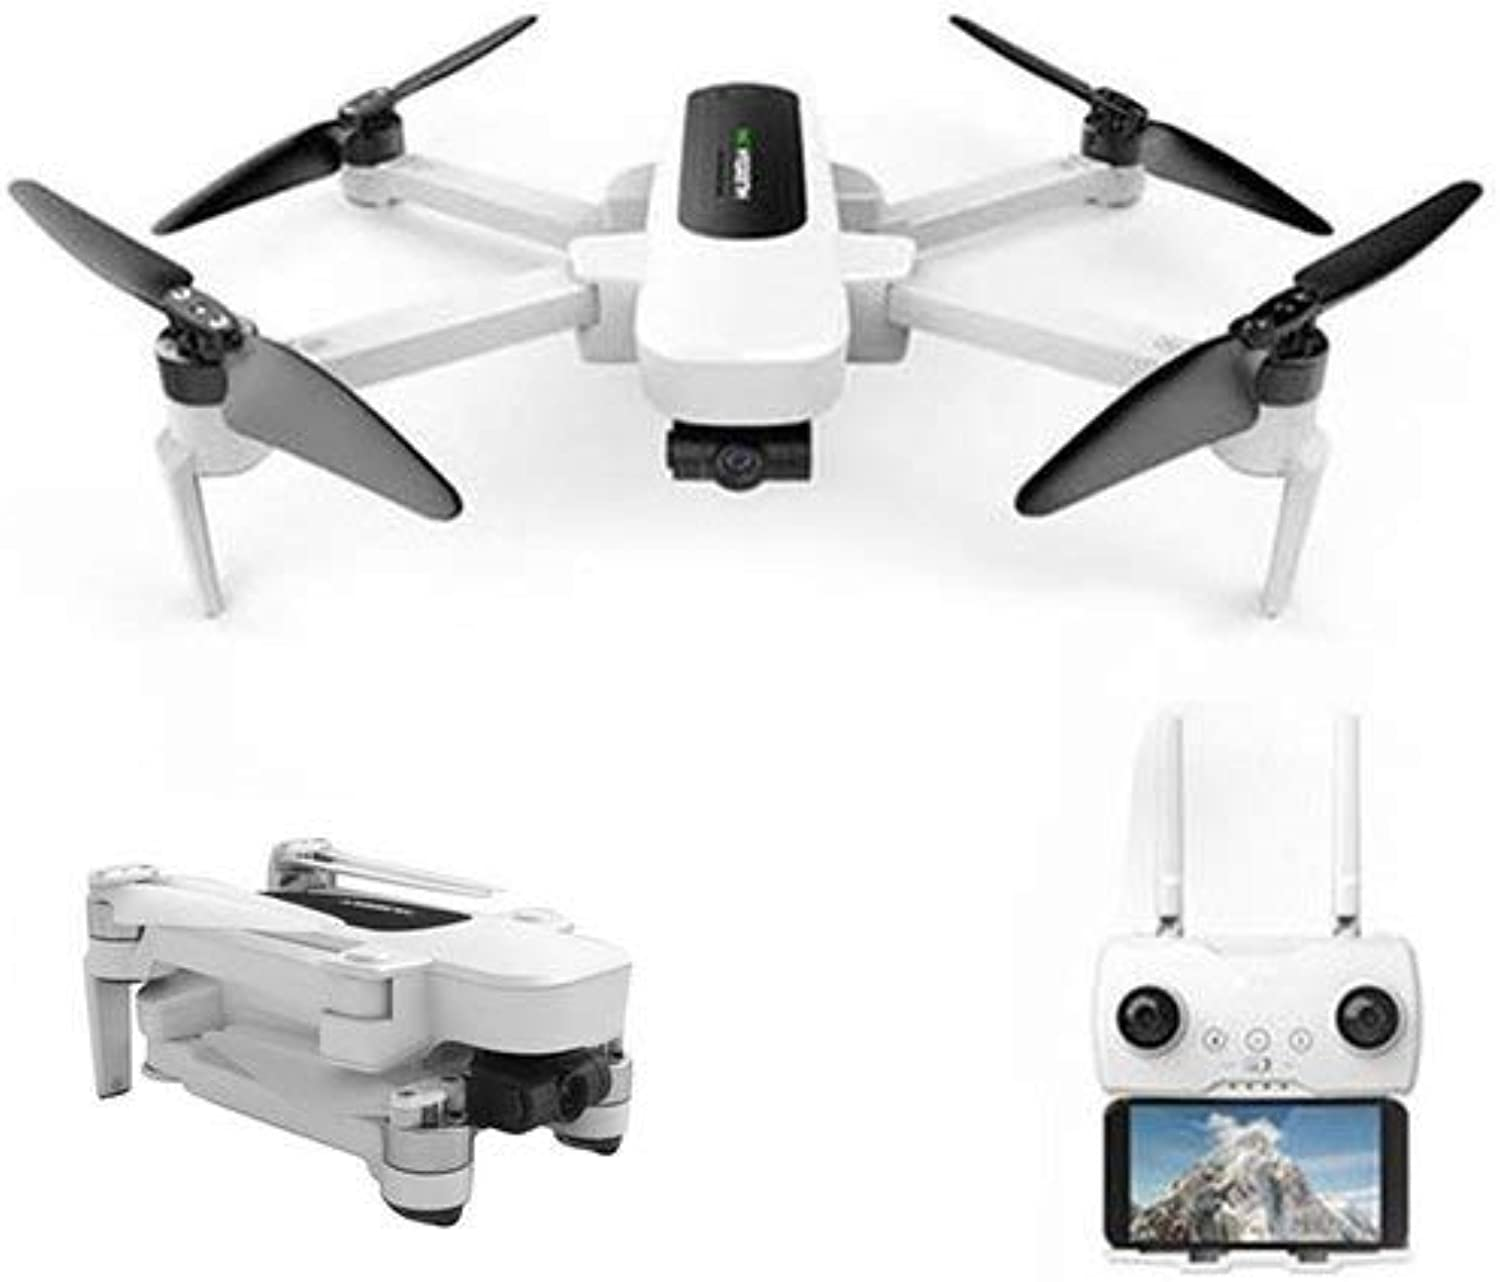 Generic Hubsan H117S Zino RC Drone GPS 5.8G 1KM FPV with 4K UHD Camera 3Axis Gimbal RC Drone Quadcopter UAV RTF RC Drones White